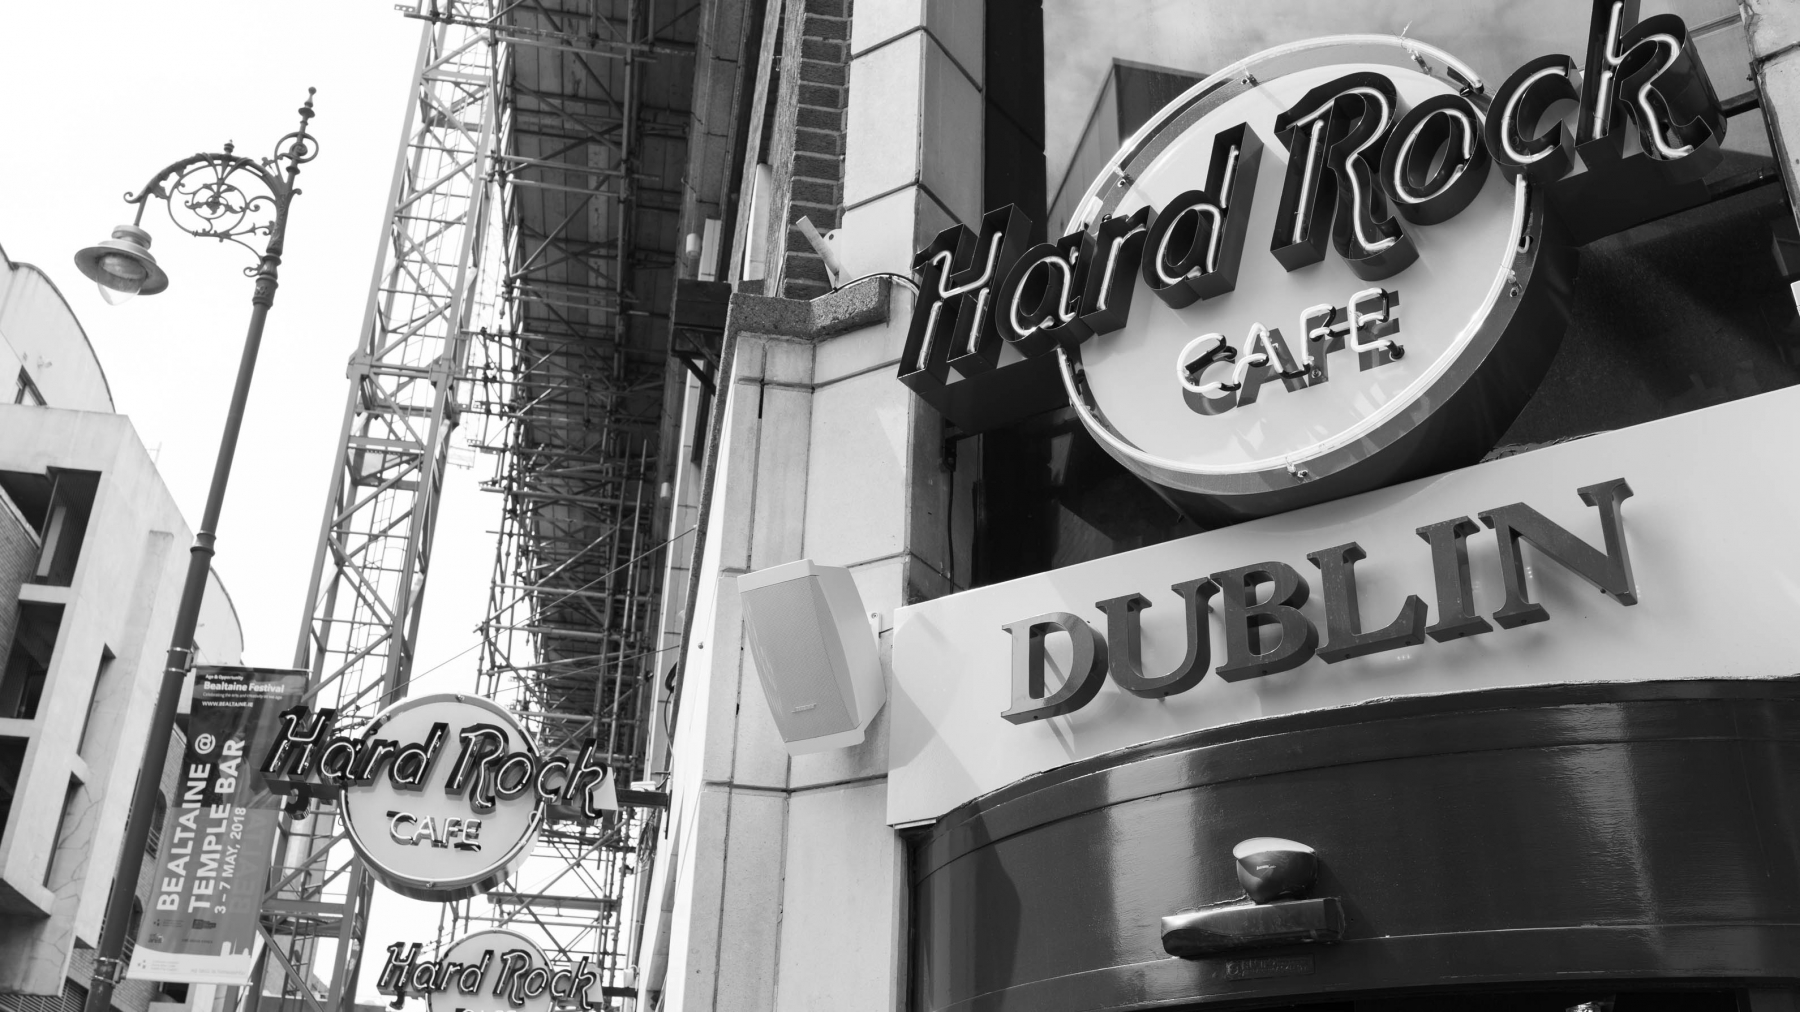 ..There's even a Hard Rock Cafe..